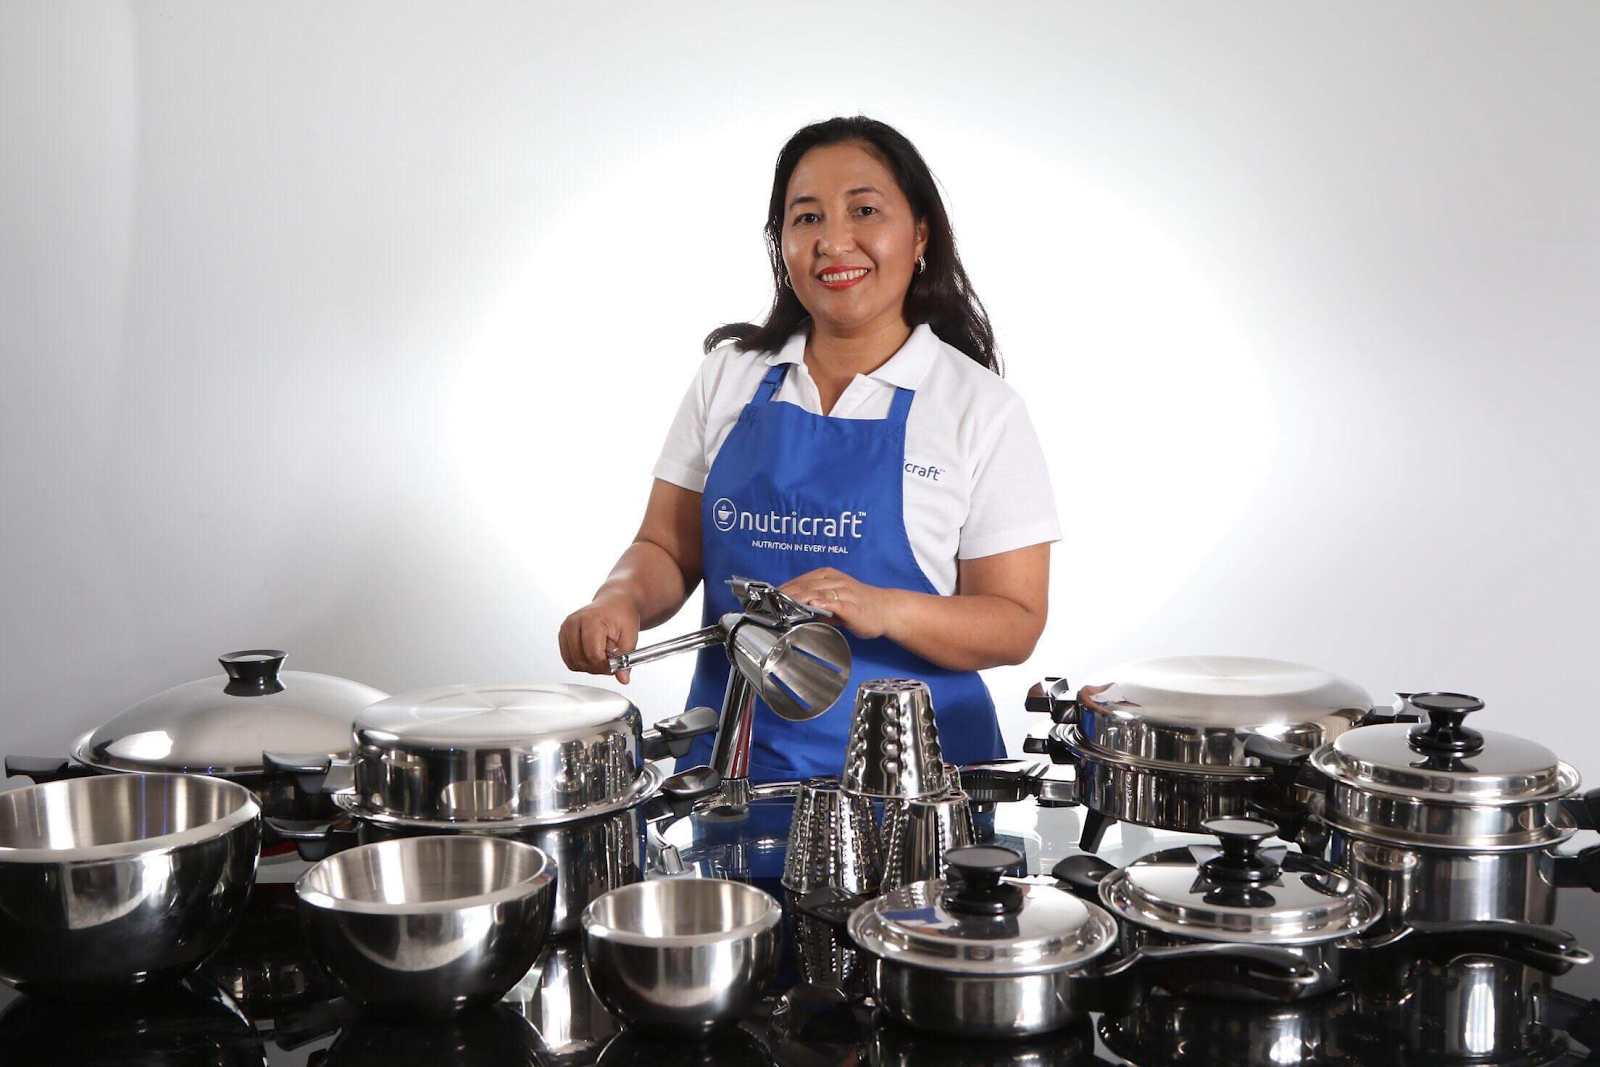 Nutricraft provides safer alternatives to traditional stainless steel cookware